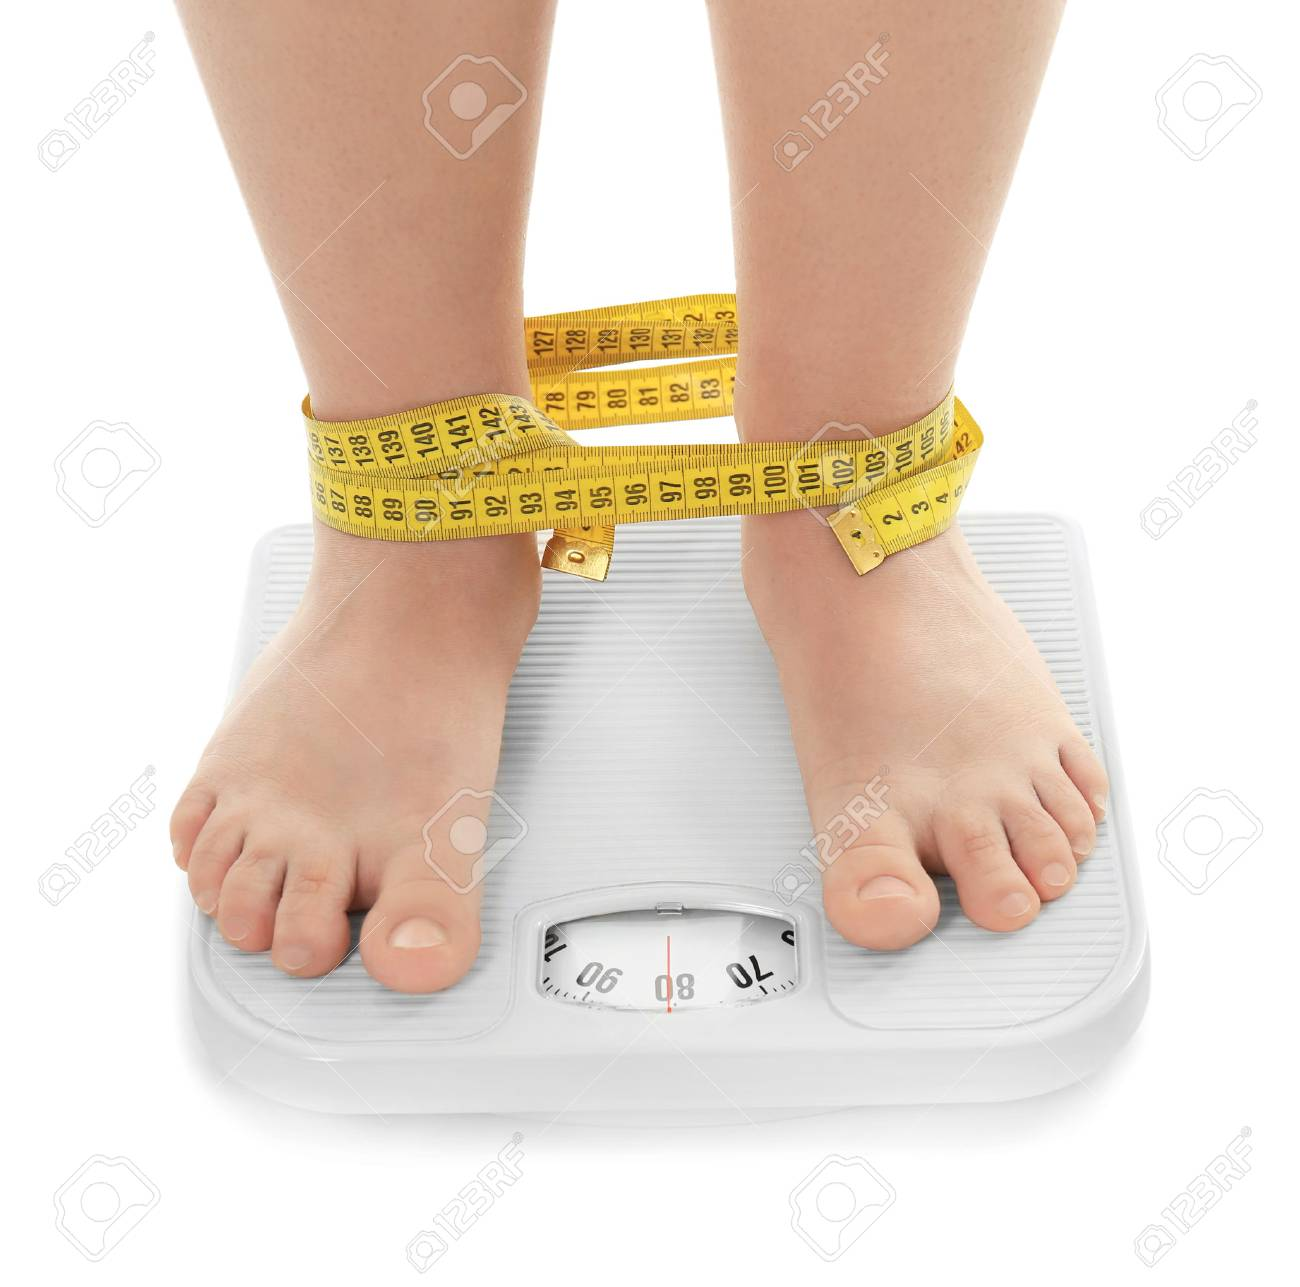 Overweight woman measuring her weight using scales, on white background. Diet concept - 98033503